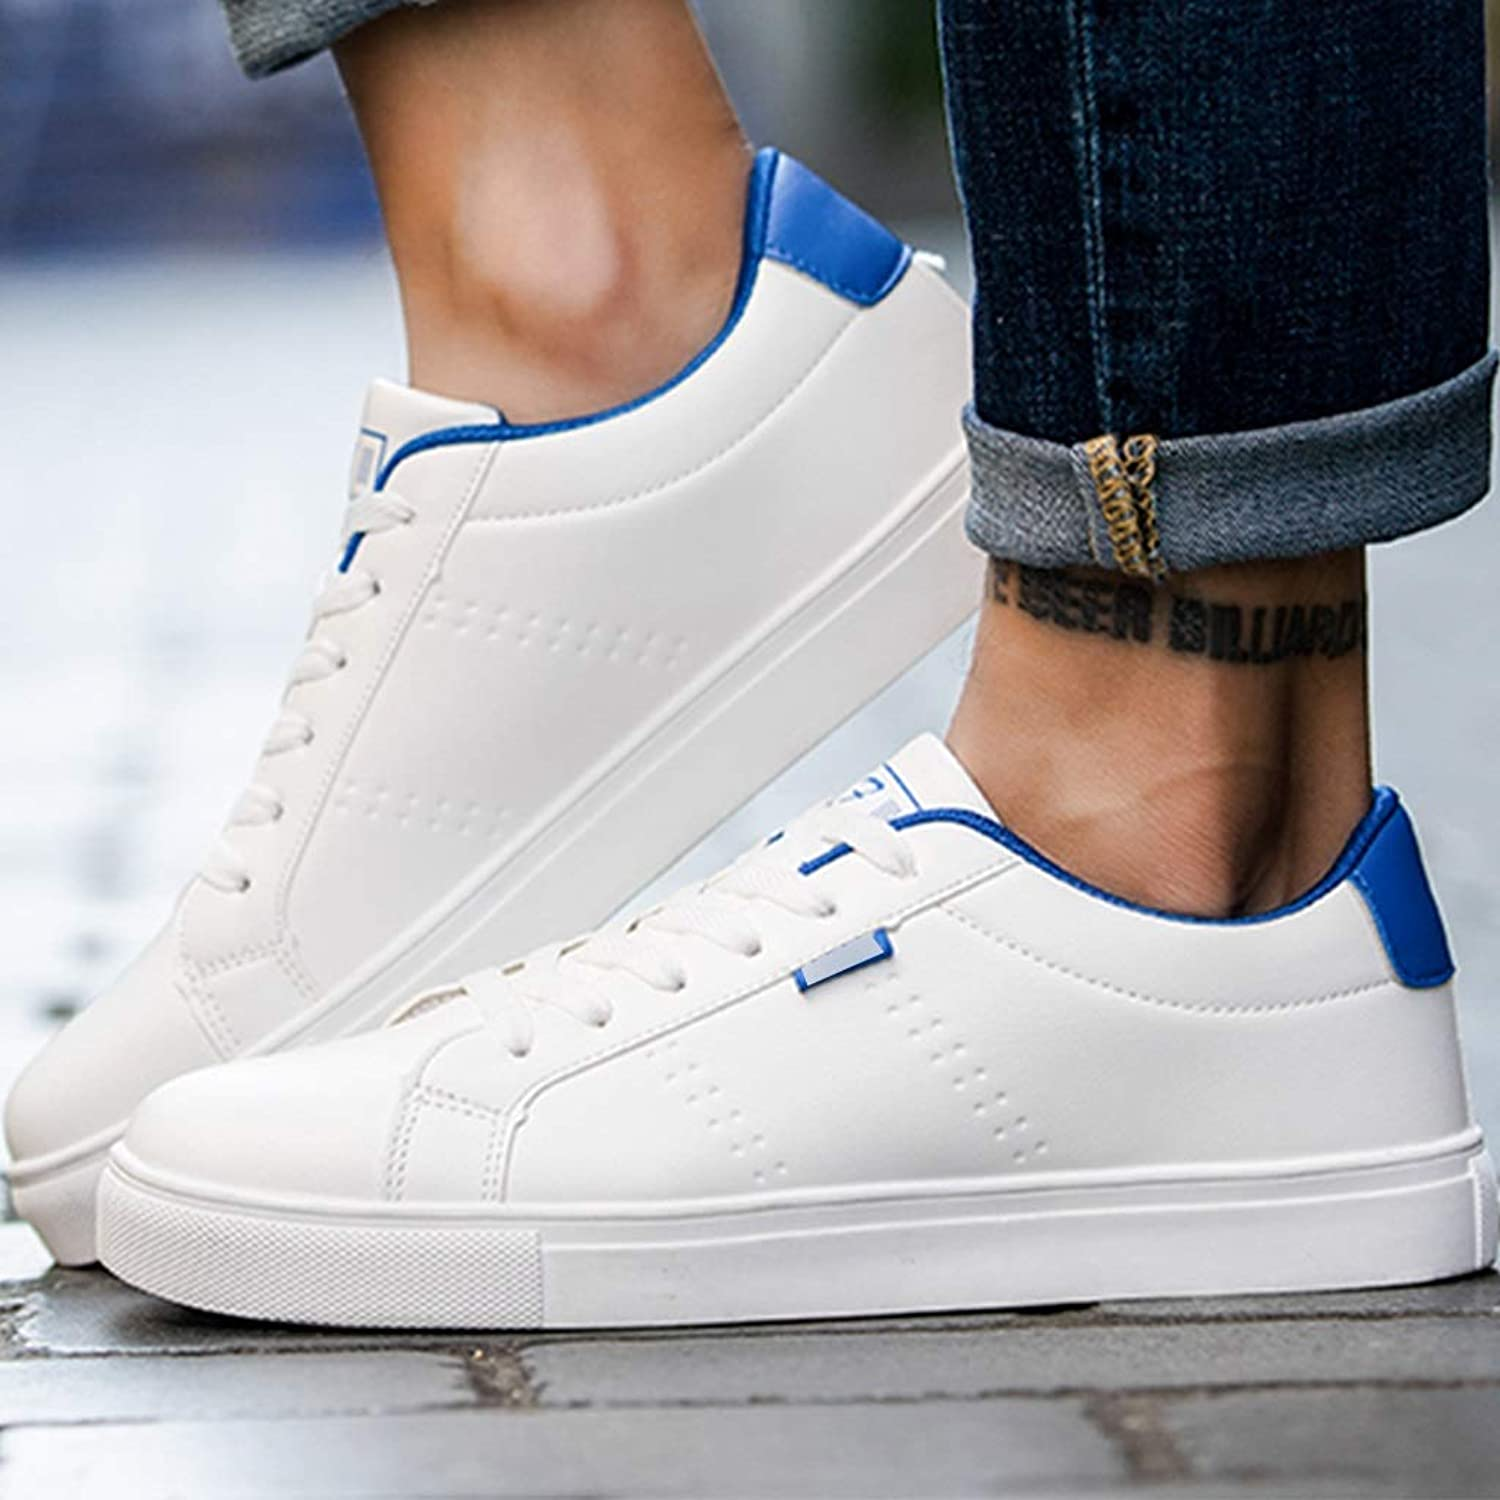 WangKuanHome Summer breathable canvas shoes trend board shoes men's wild casual canvas shoes men's shoes (color   White and bluee color, Size   44)